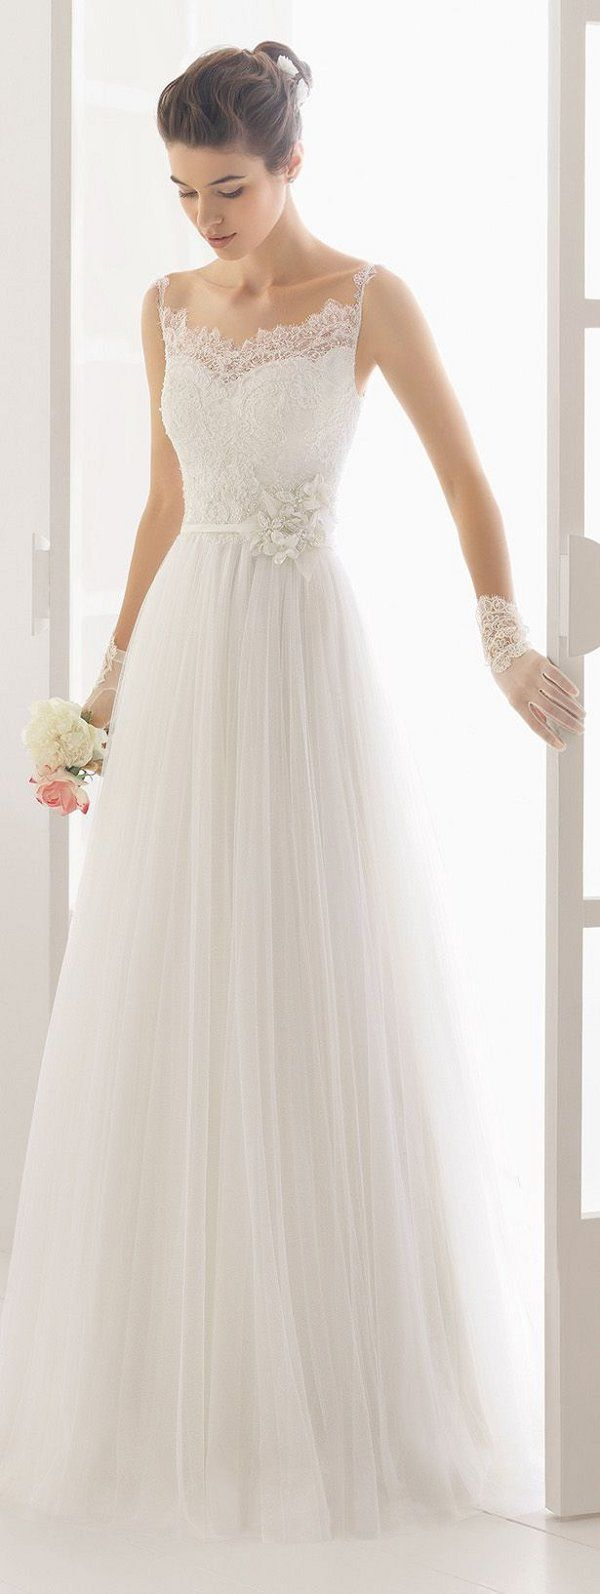 Best 25 vintage wedding dresses ideas on pinterest lace for Vintage lace wedding dress pinterest